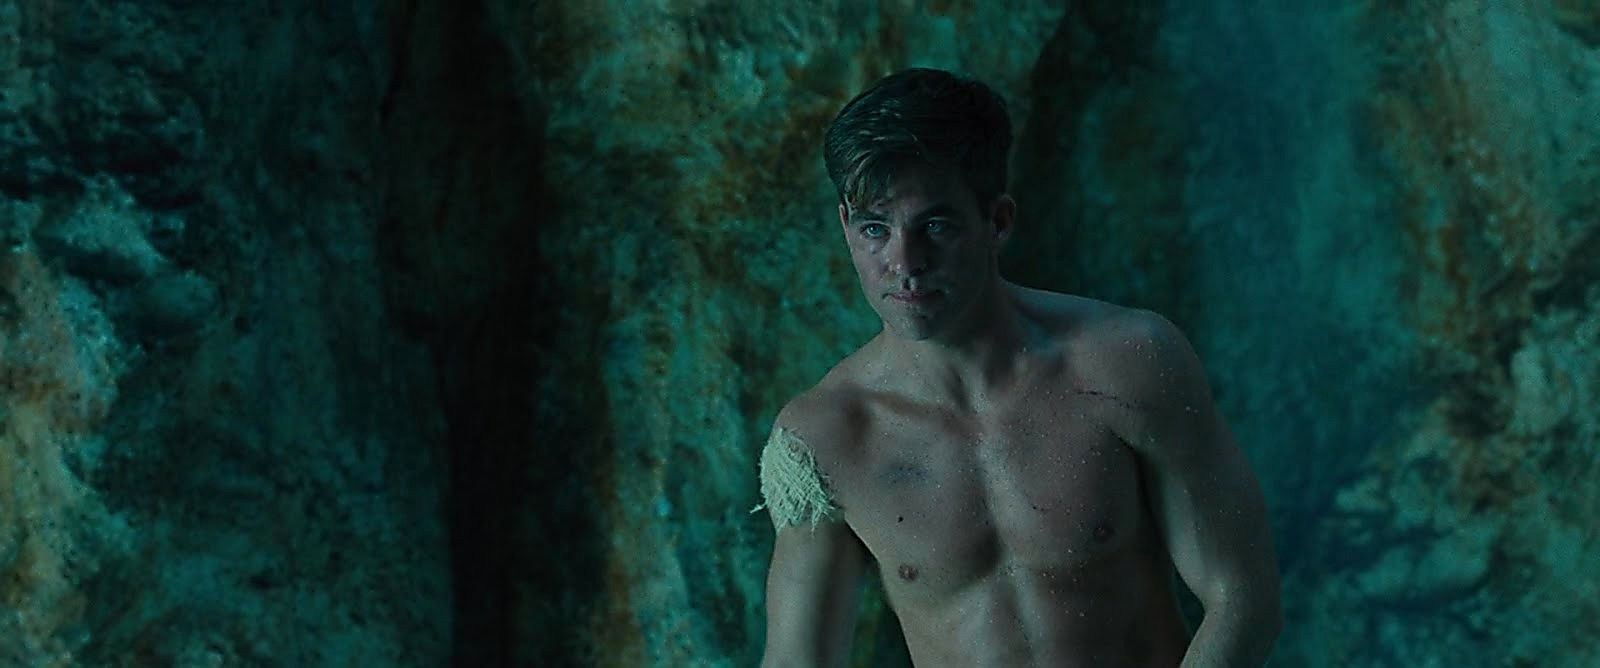 Chris Pine sexy shirtless scene August 29, 2017, 1pm